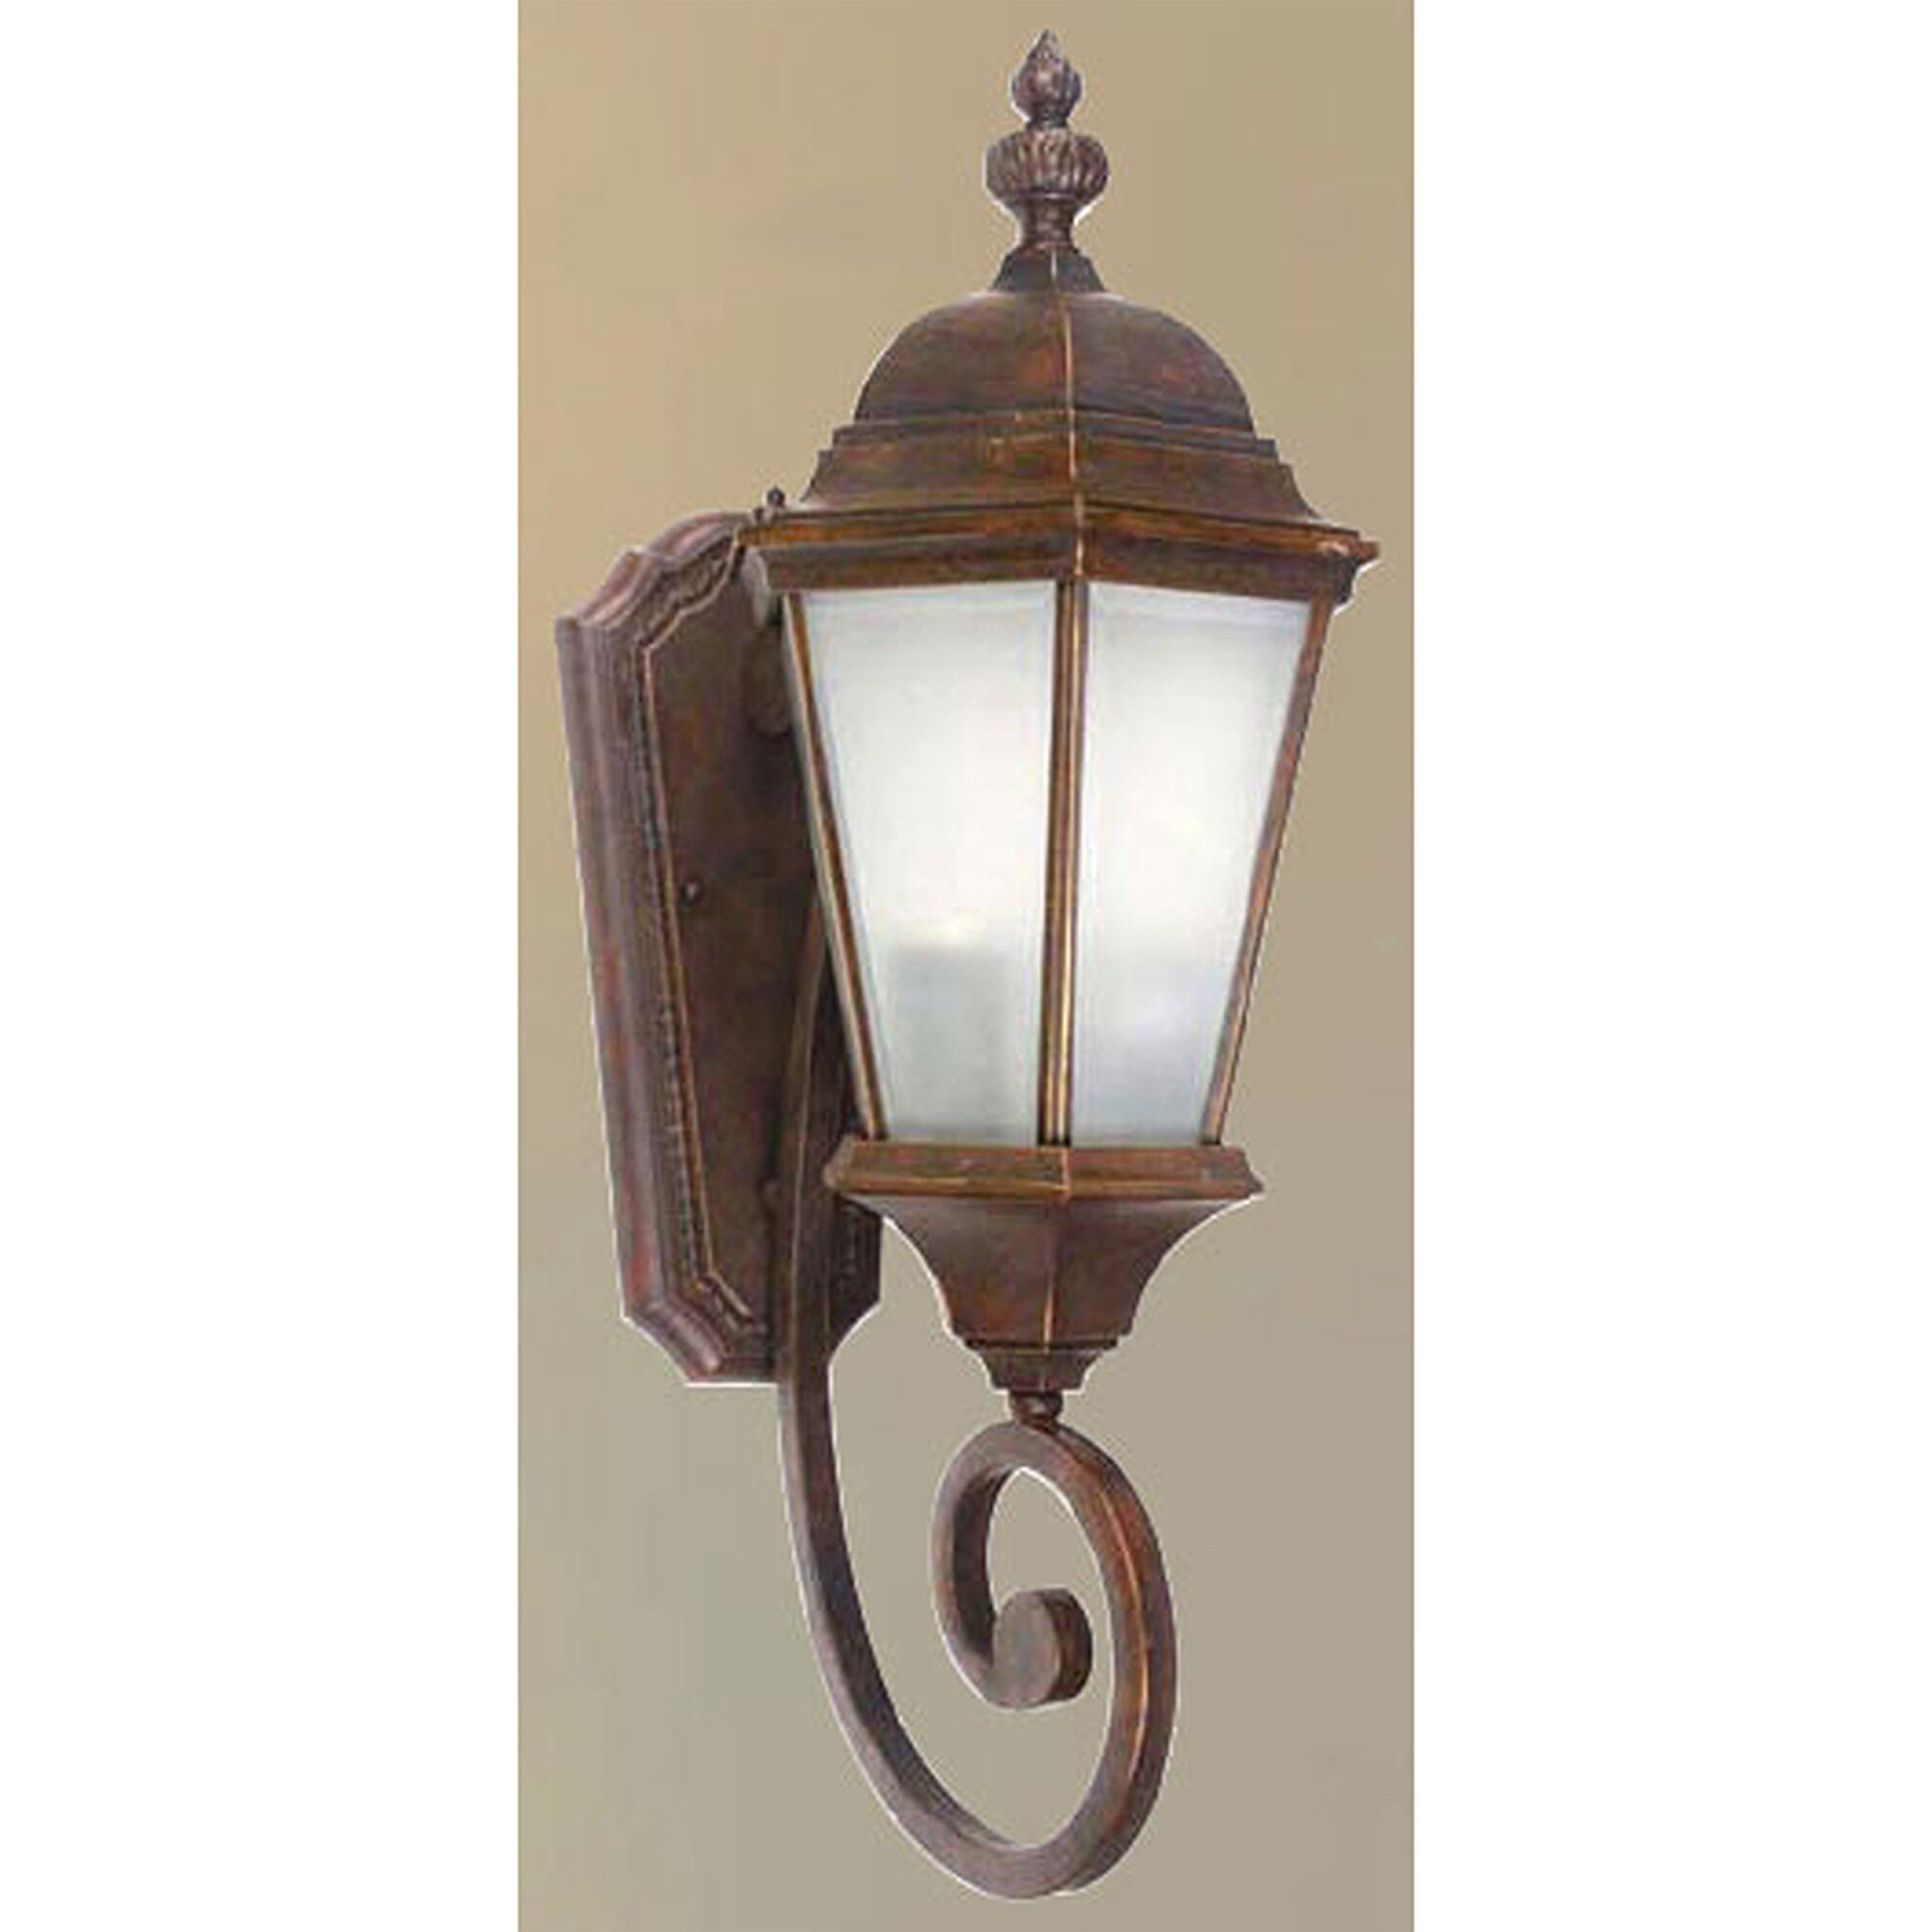 Decorative Wall Lights For Home : Yosemite Home Decor Brielle 2 Light Outdoor Sconce & Reviews Wayfair